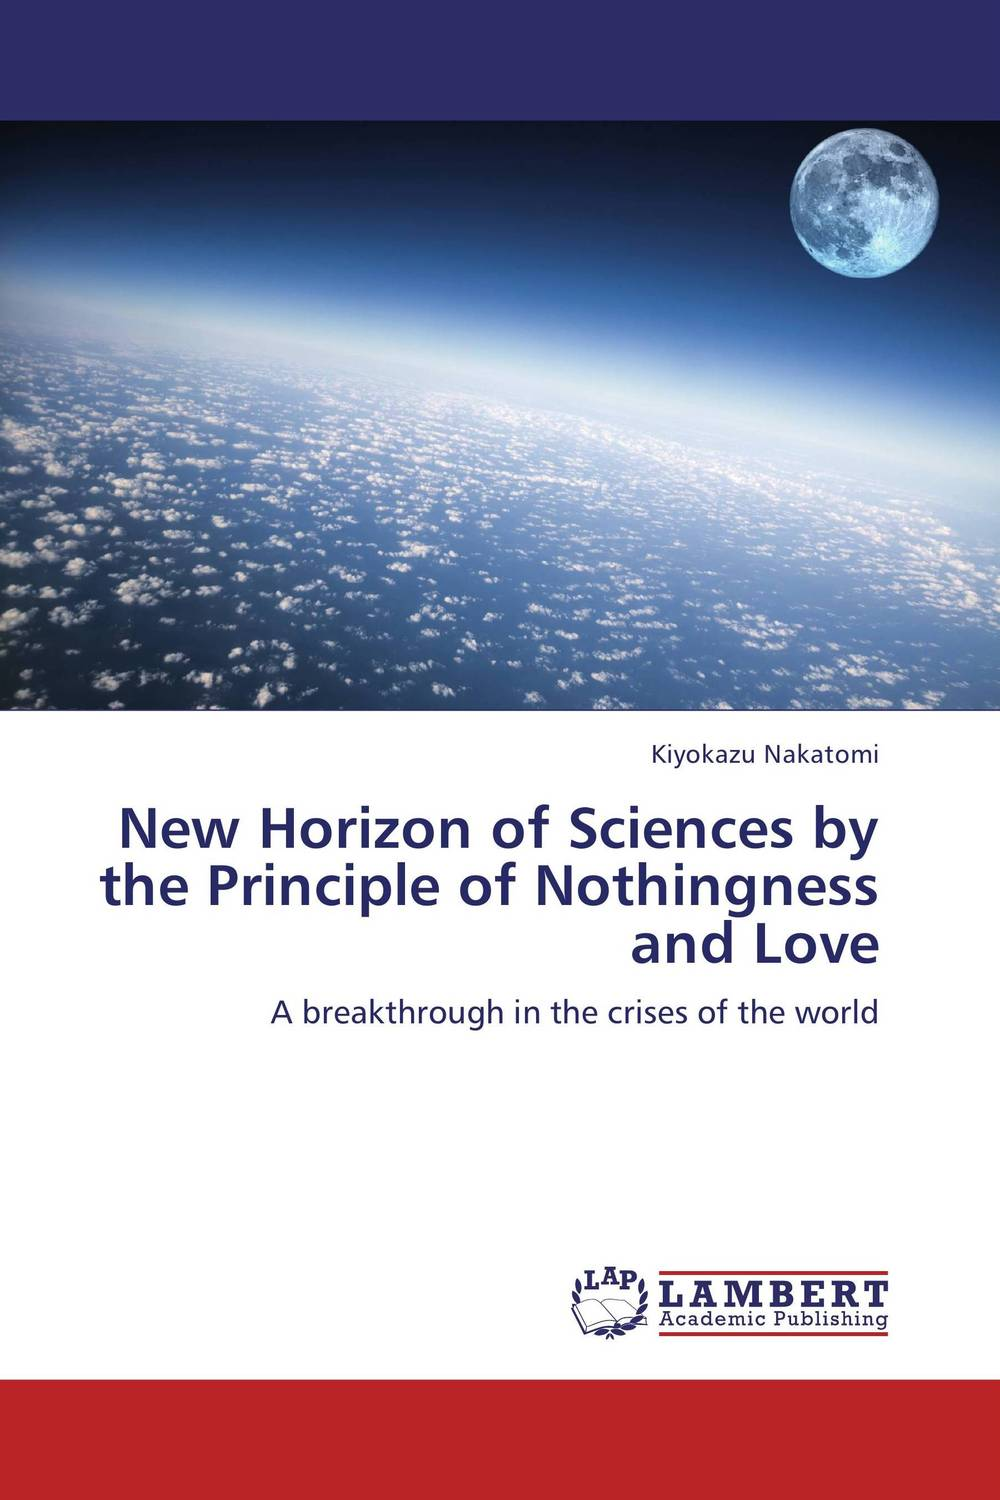 New Horizon of Sciences by the Principle of Nothingness and Love video green – los angeles and the triumph of nothingness